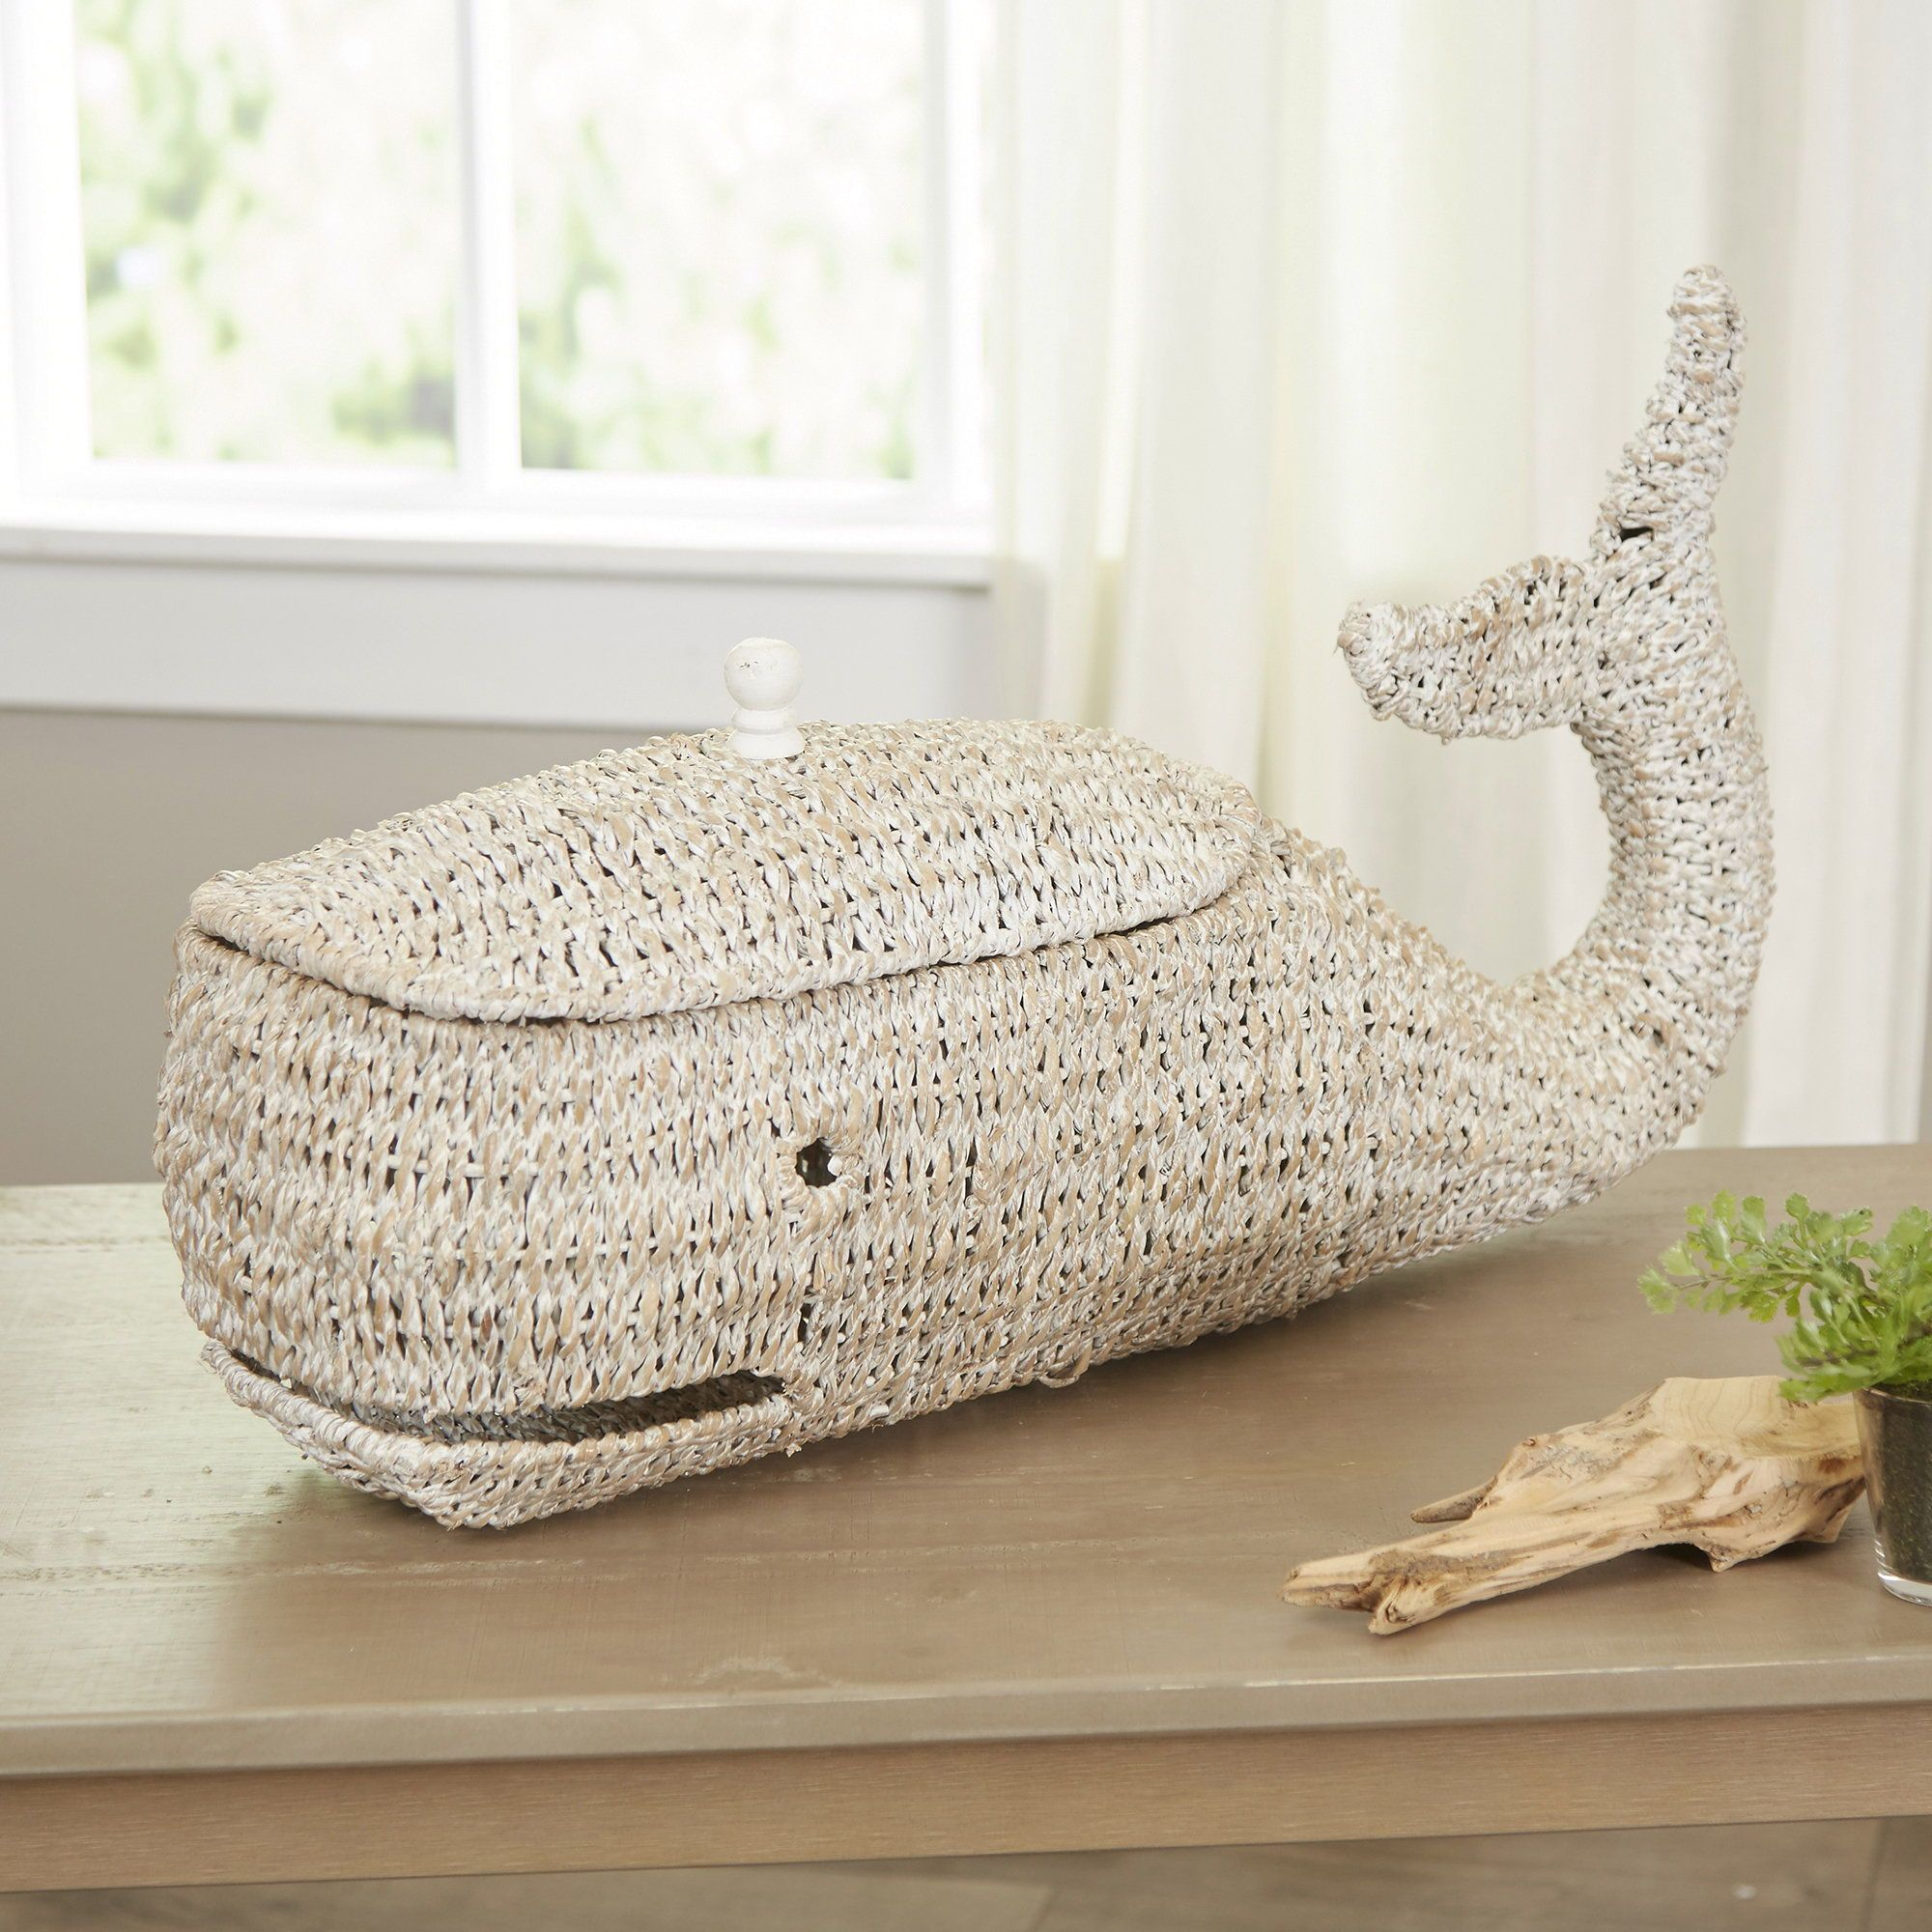 50 Best Wicker Baskets And Rattan Baskets 2020 With Images Rattan Basket Whale Decor Fabric Storage Bins #storage #basket #for #living #room